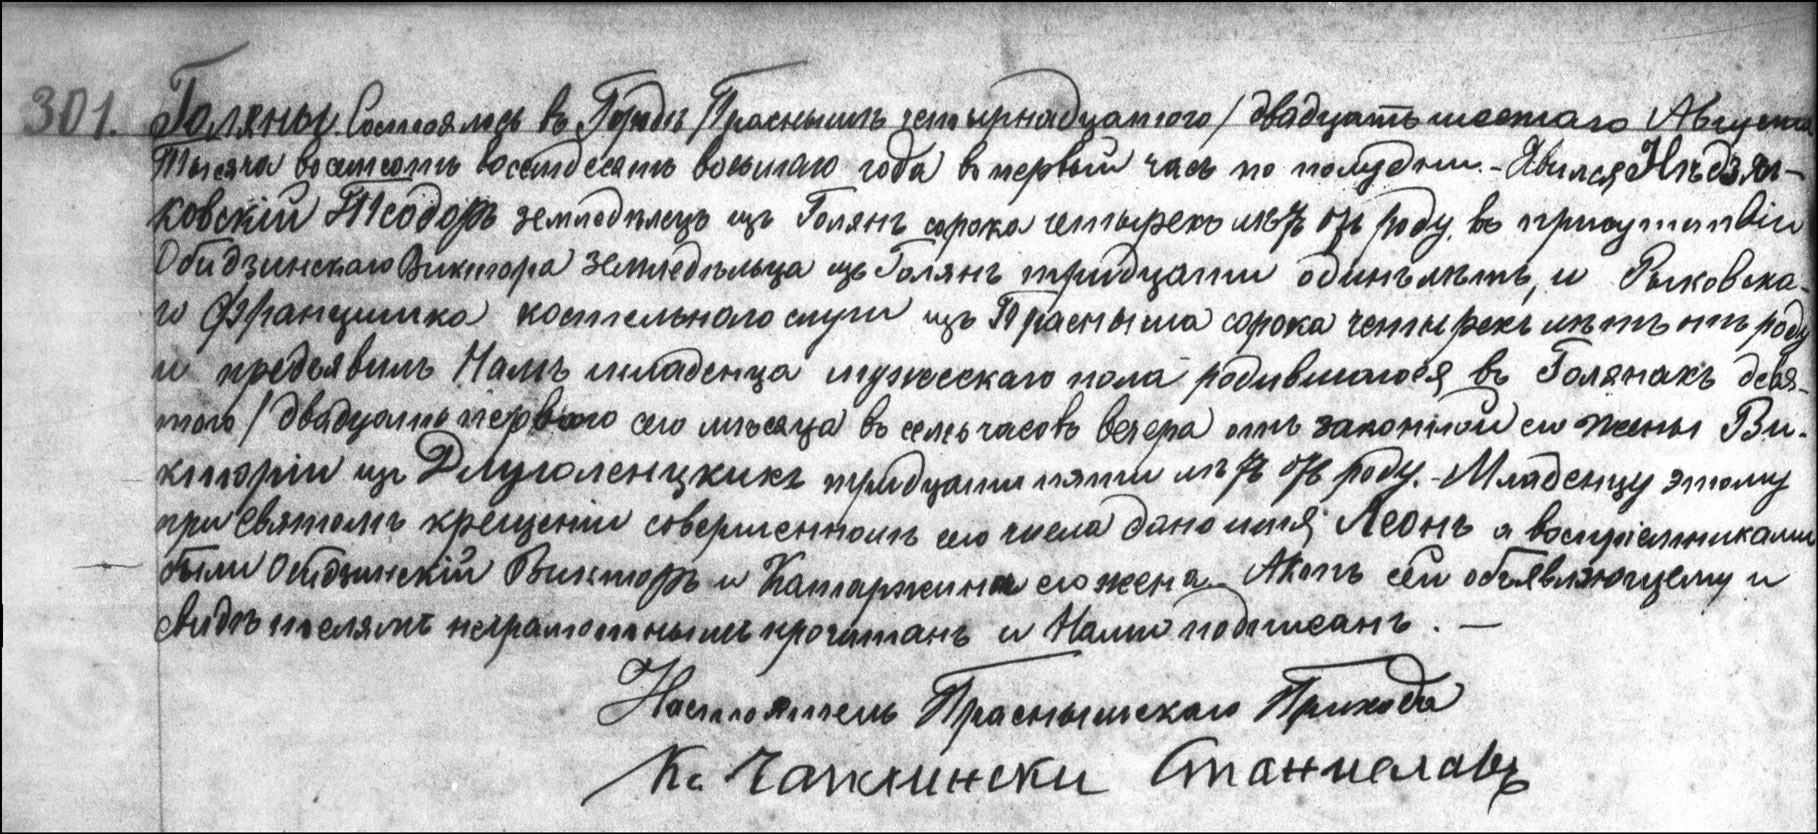 The Birth and Baptismal Record of Leon Niedzialkowski - 1888